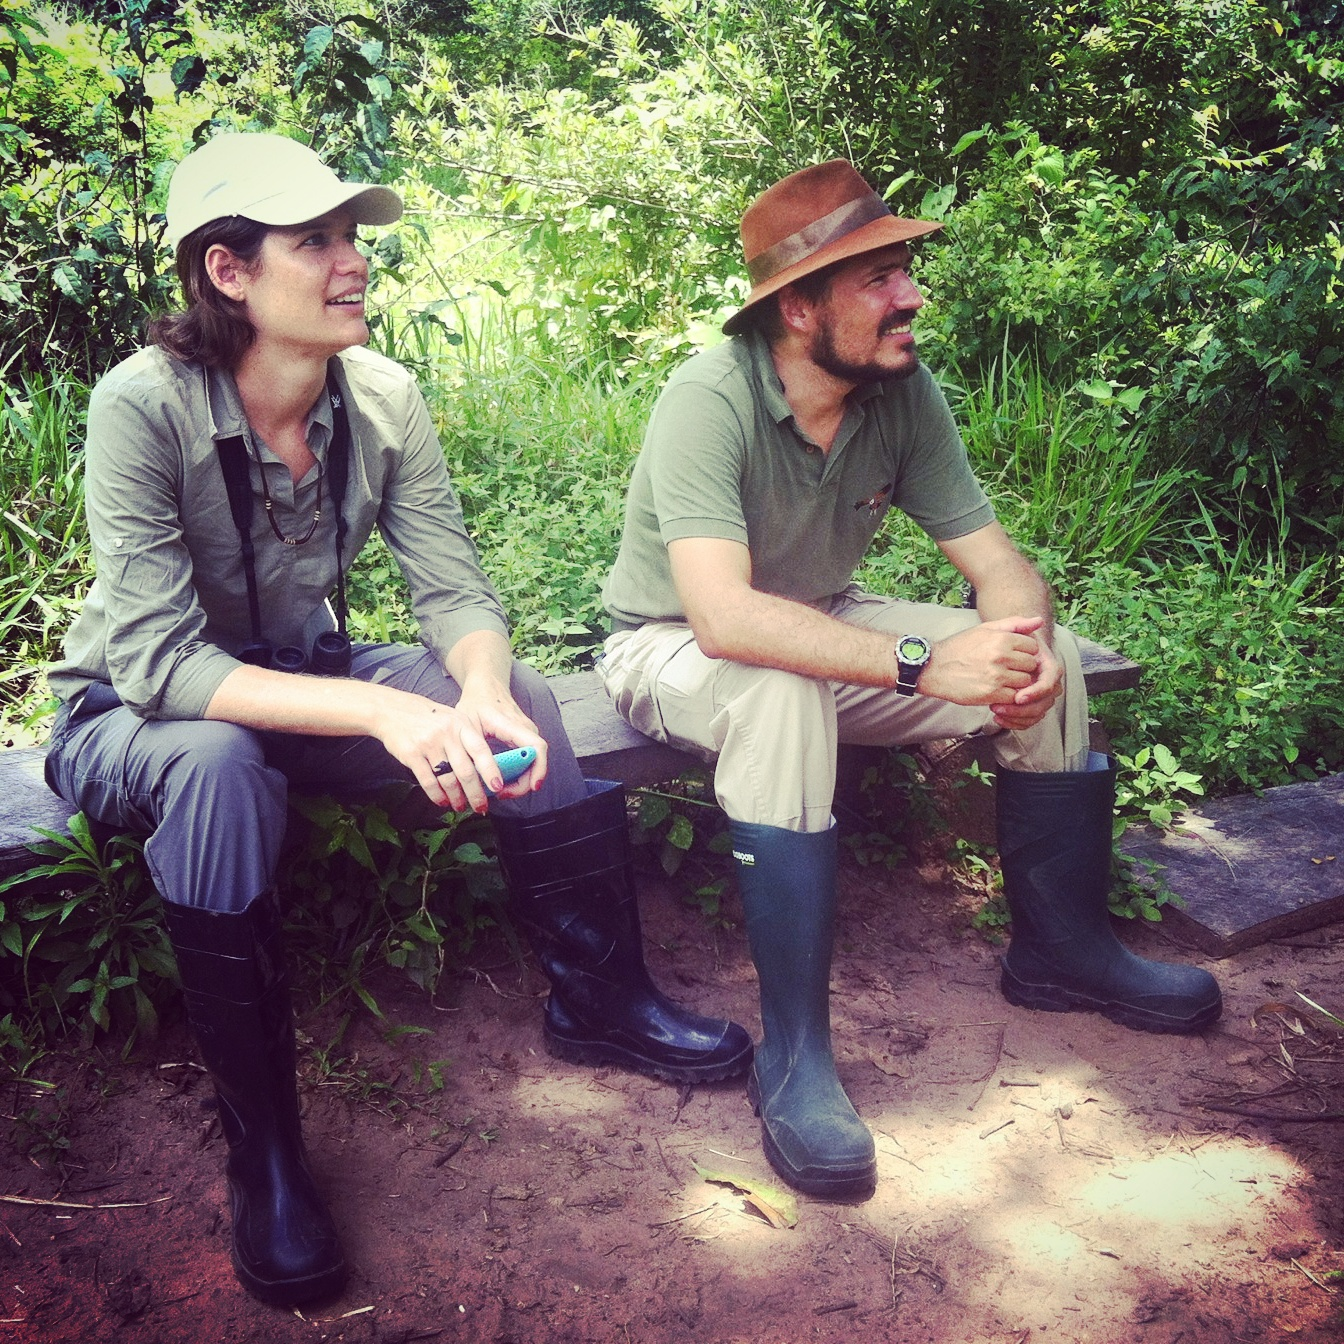 Bianca and Giuliano sit in the shade while waiting to spot the Harpy Eagle. Credit: Noah Strycker